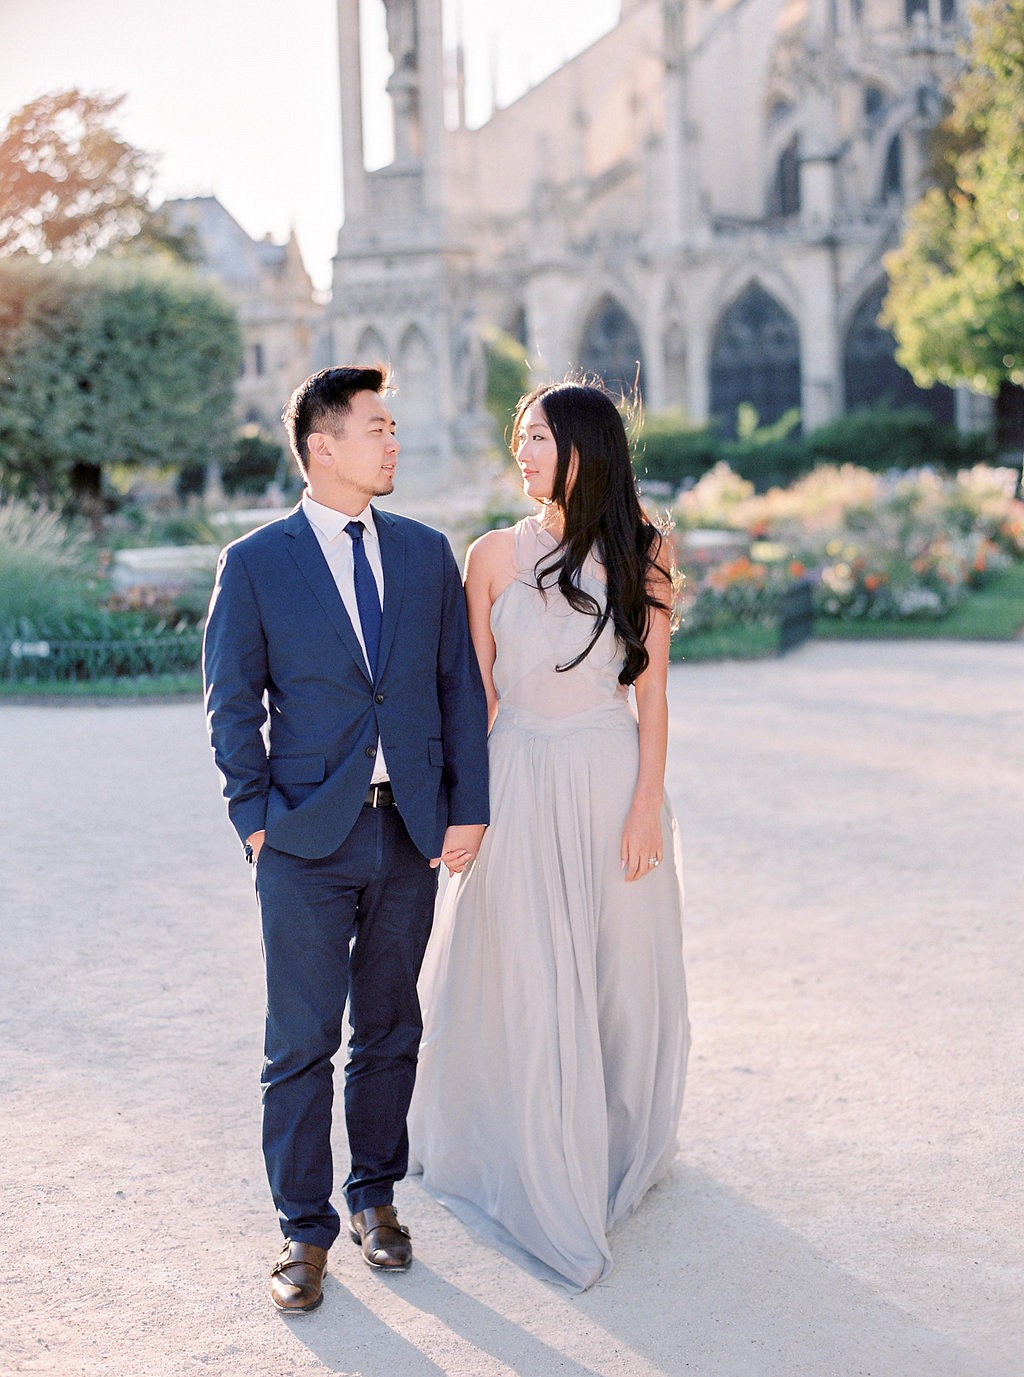 Perfect Engagement Outfit Inspiration in Paris